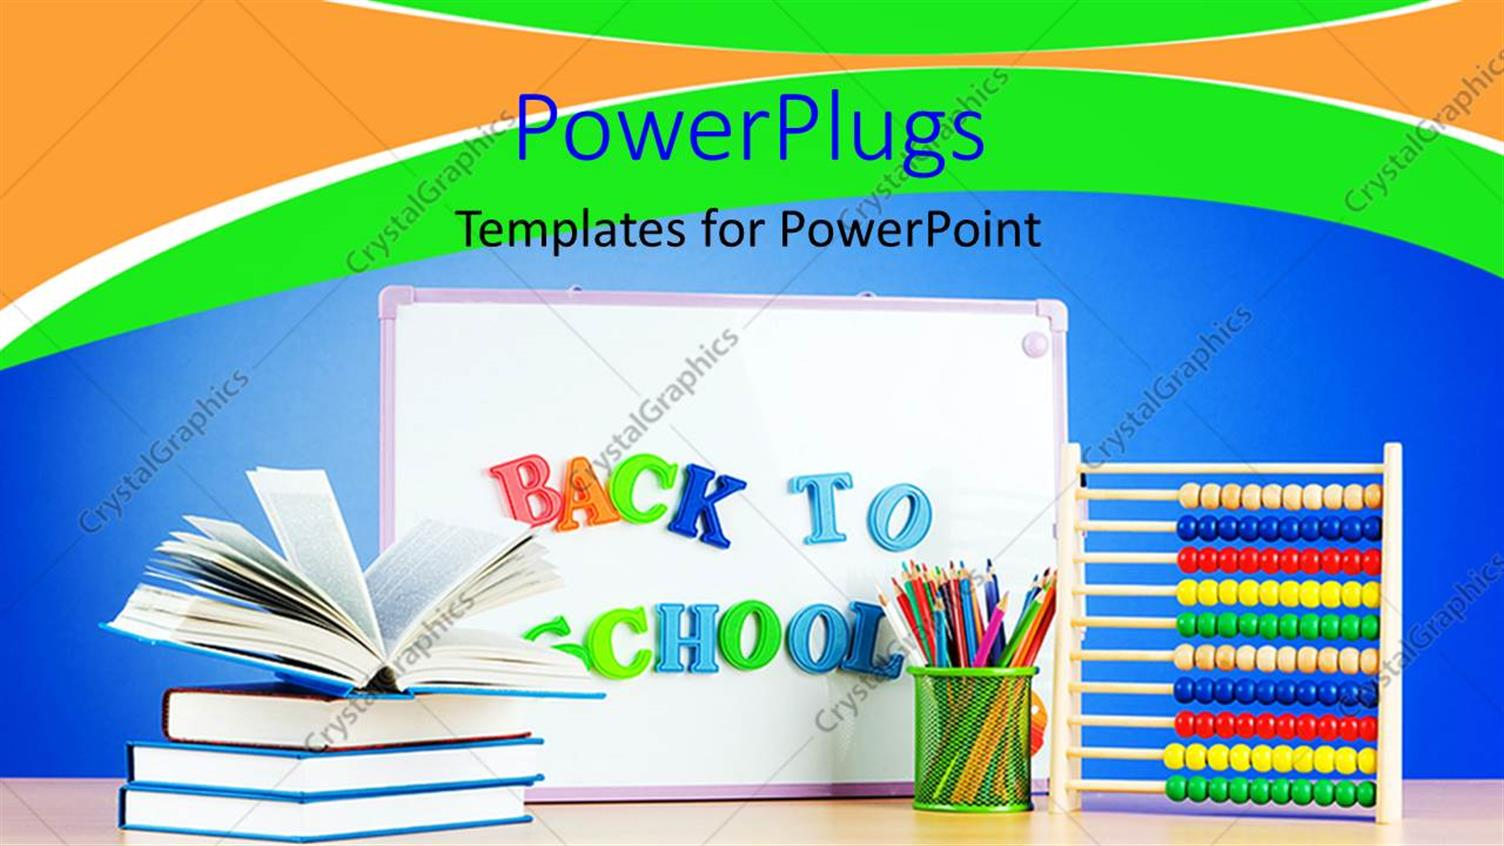 PowerPoint Template Displaying Back to School Depiction with Book Pile and School Supplies